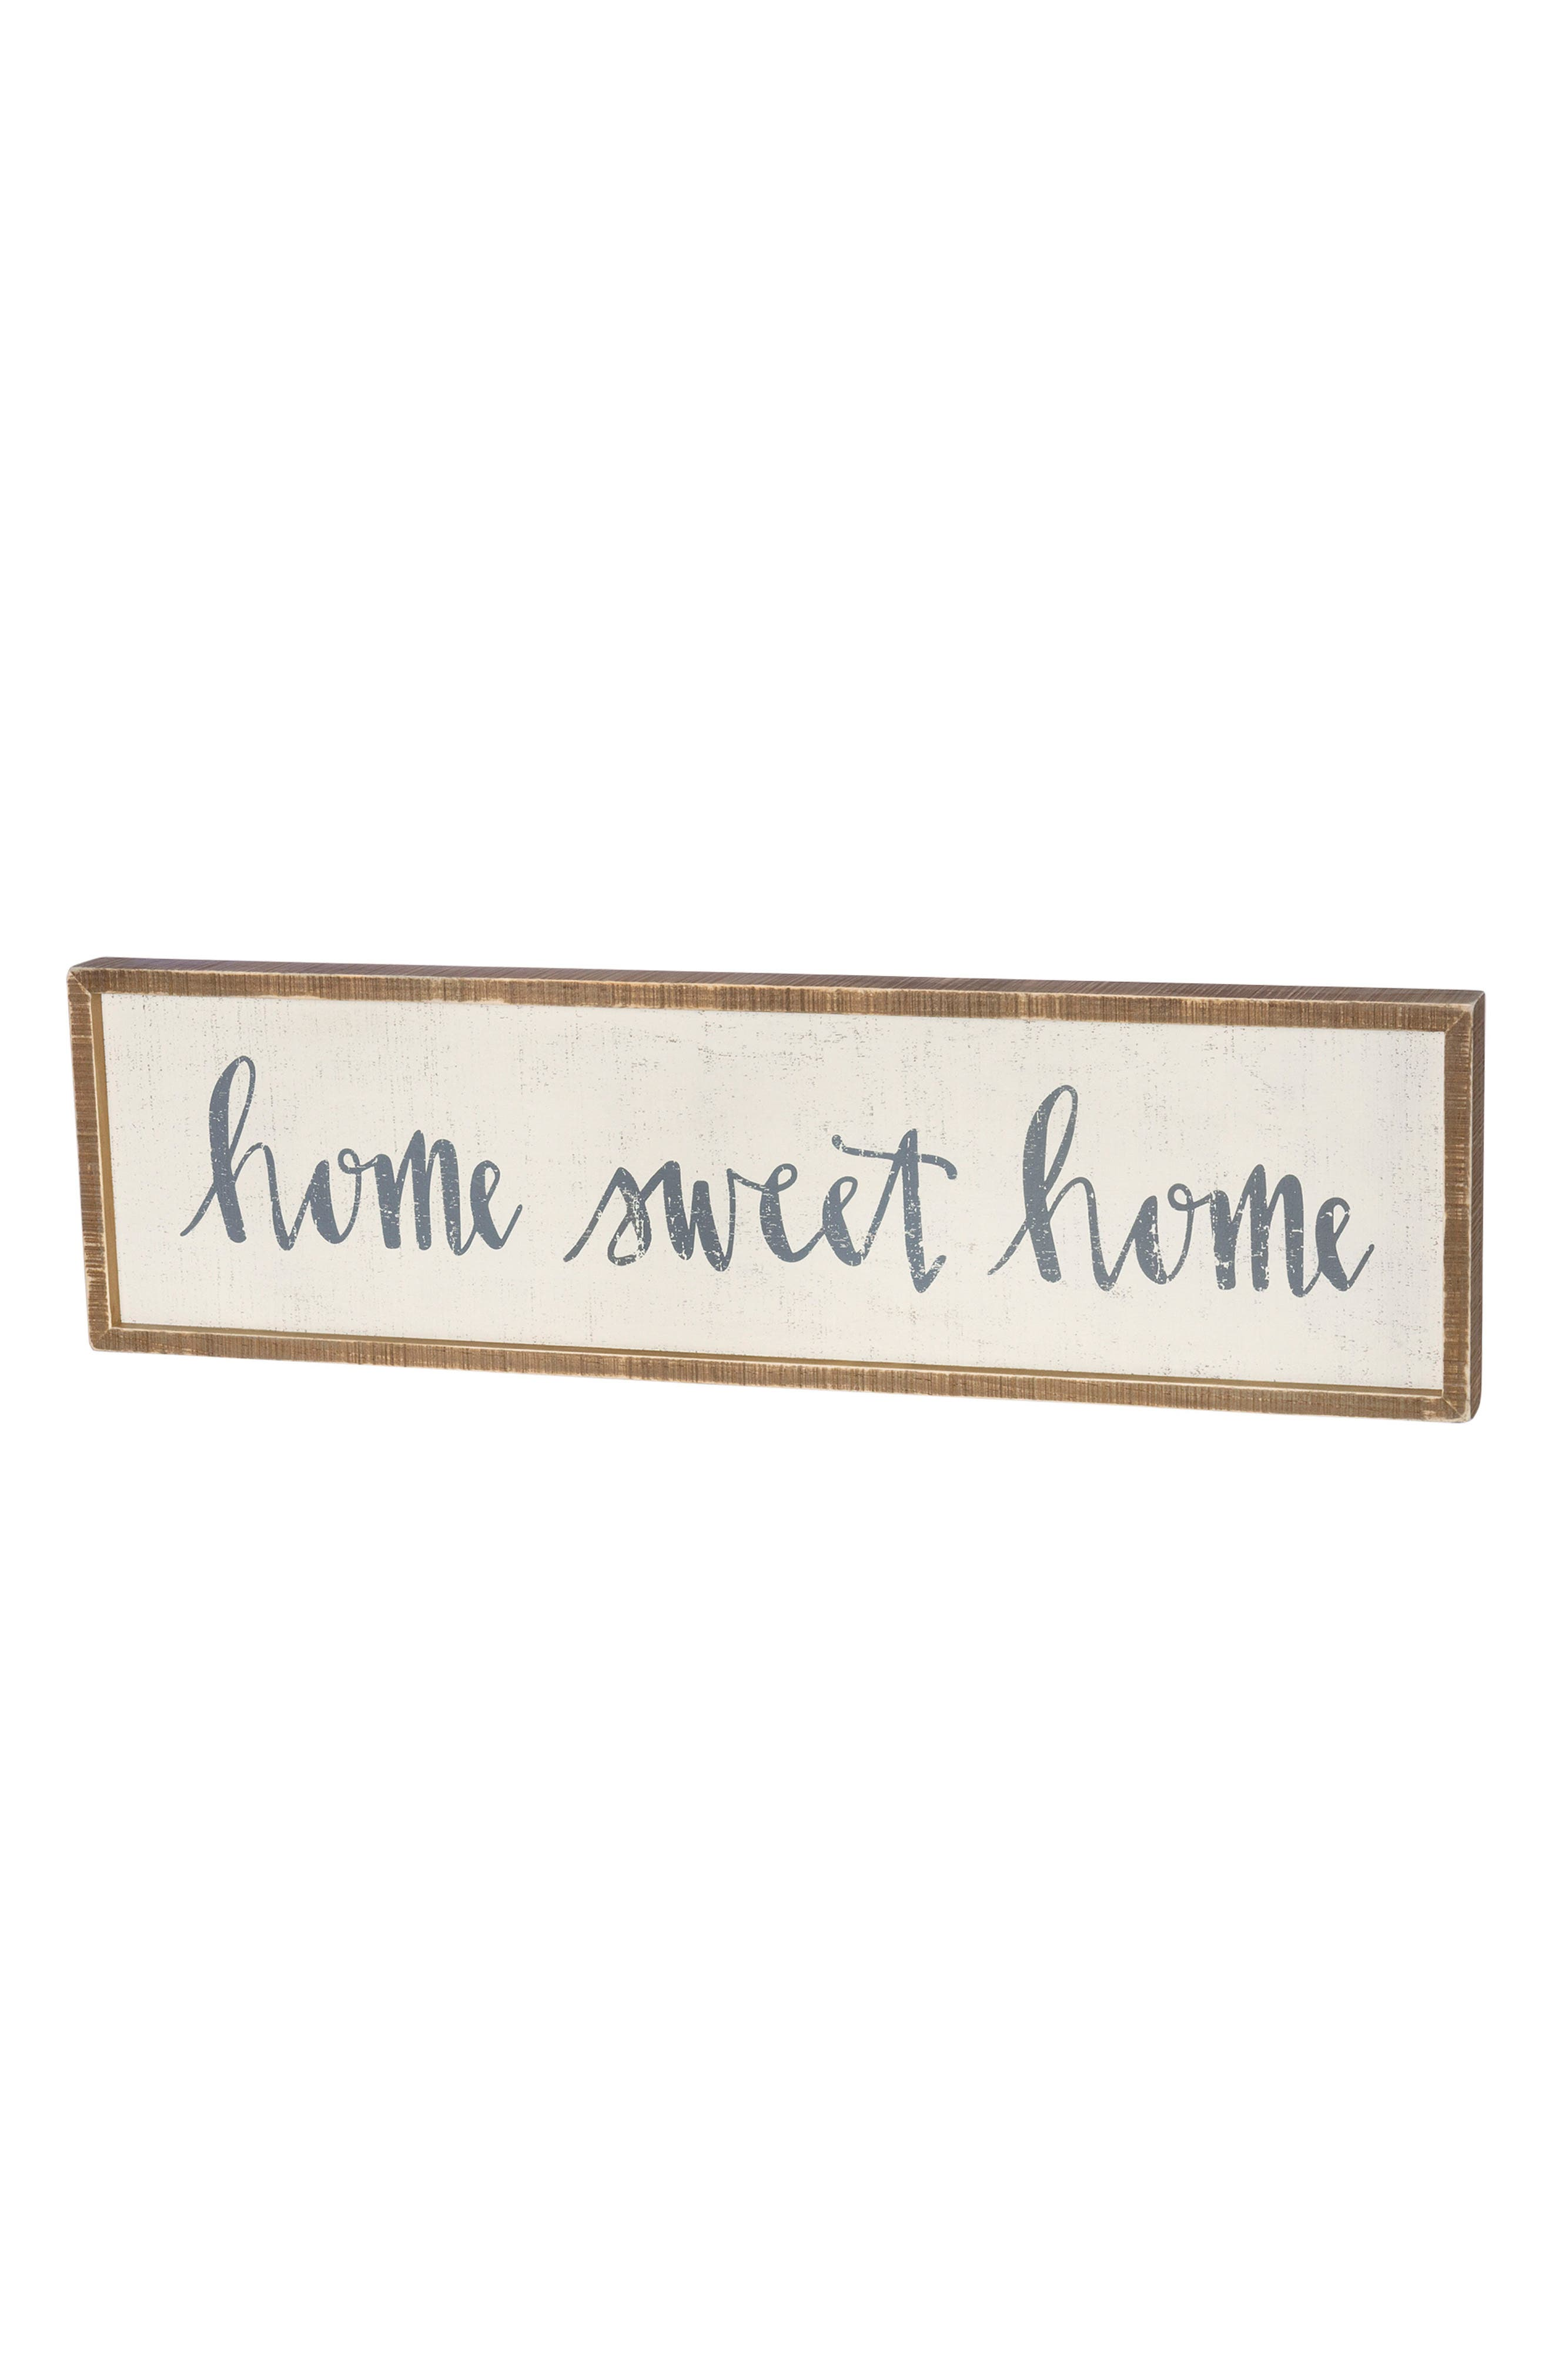 Home Sweet Home Inset Box Sign,                         Main,                         color, 100